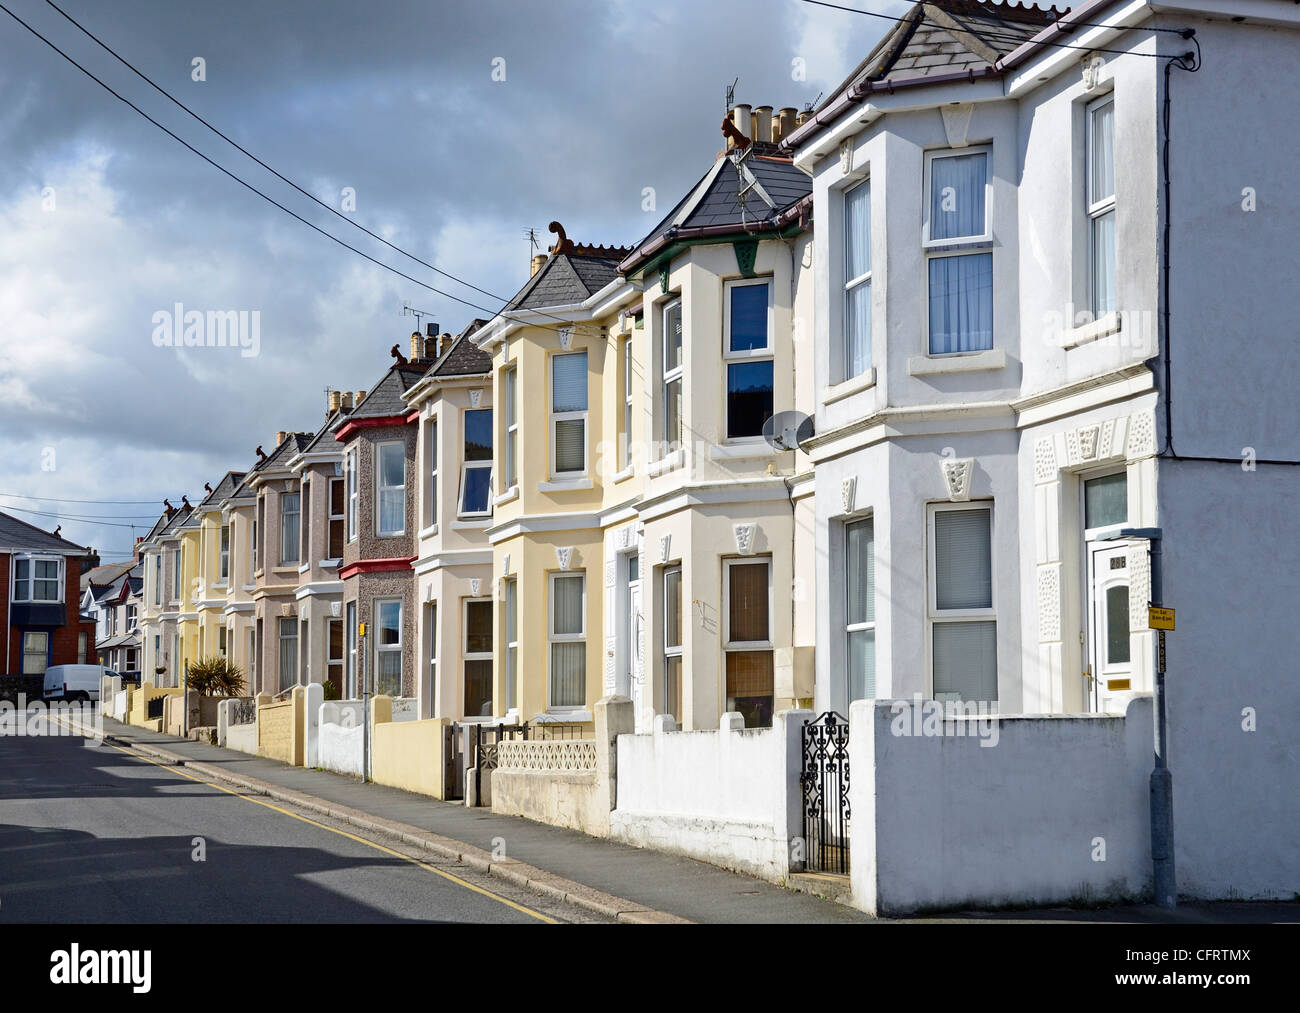 Houses With Bay Windows a street of terraced houses with bay windows, saltash, cornwall